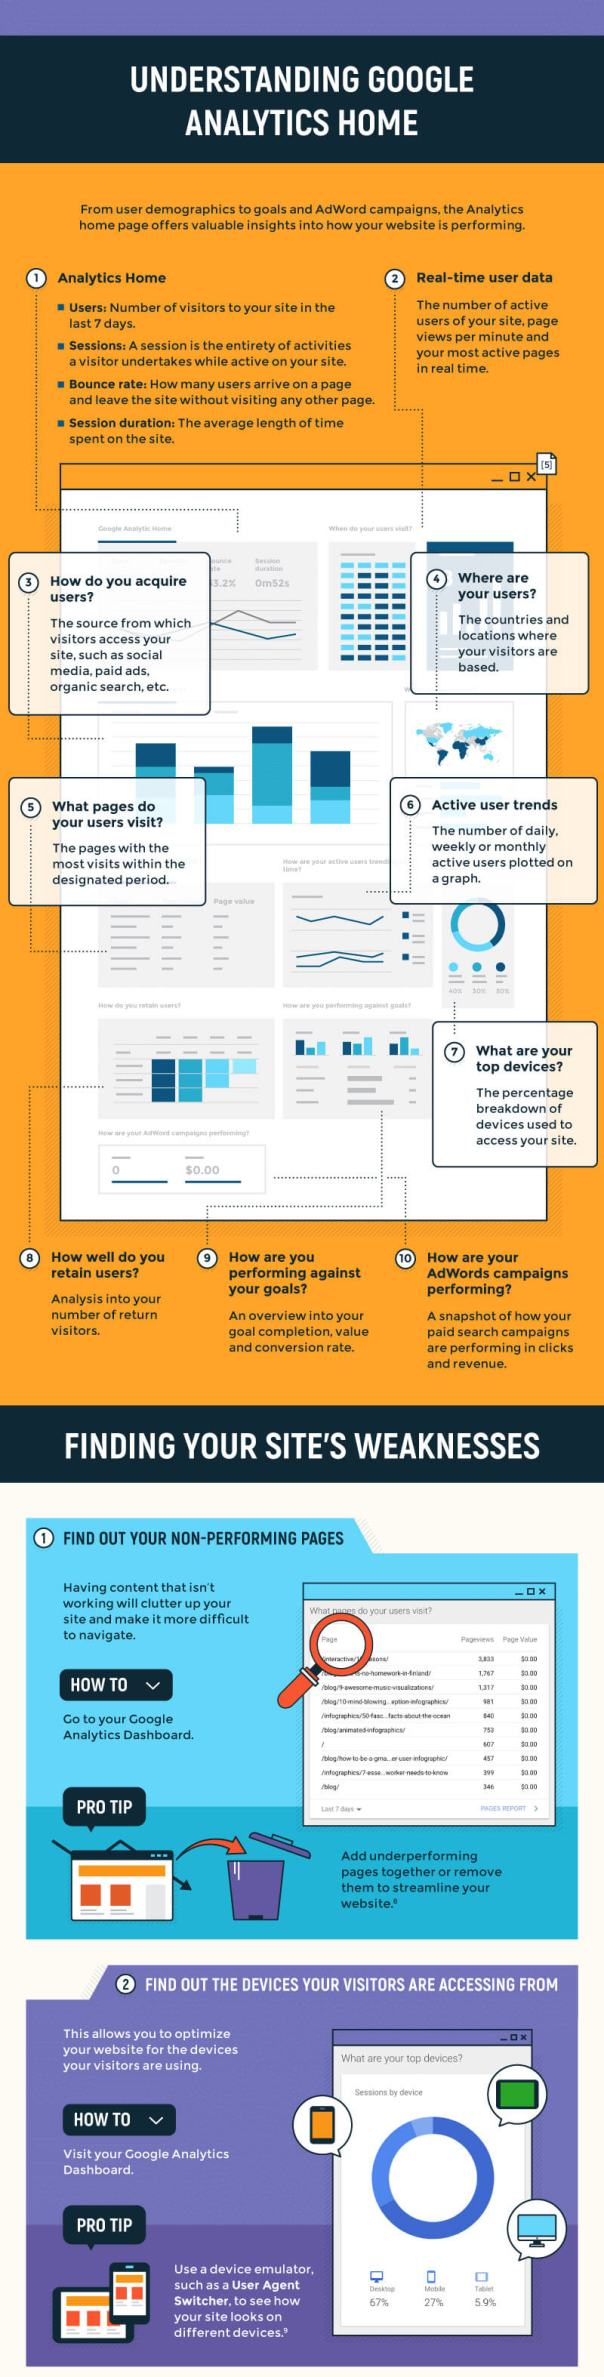 ll-Business-Guide-to-Google-Analytics_02